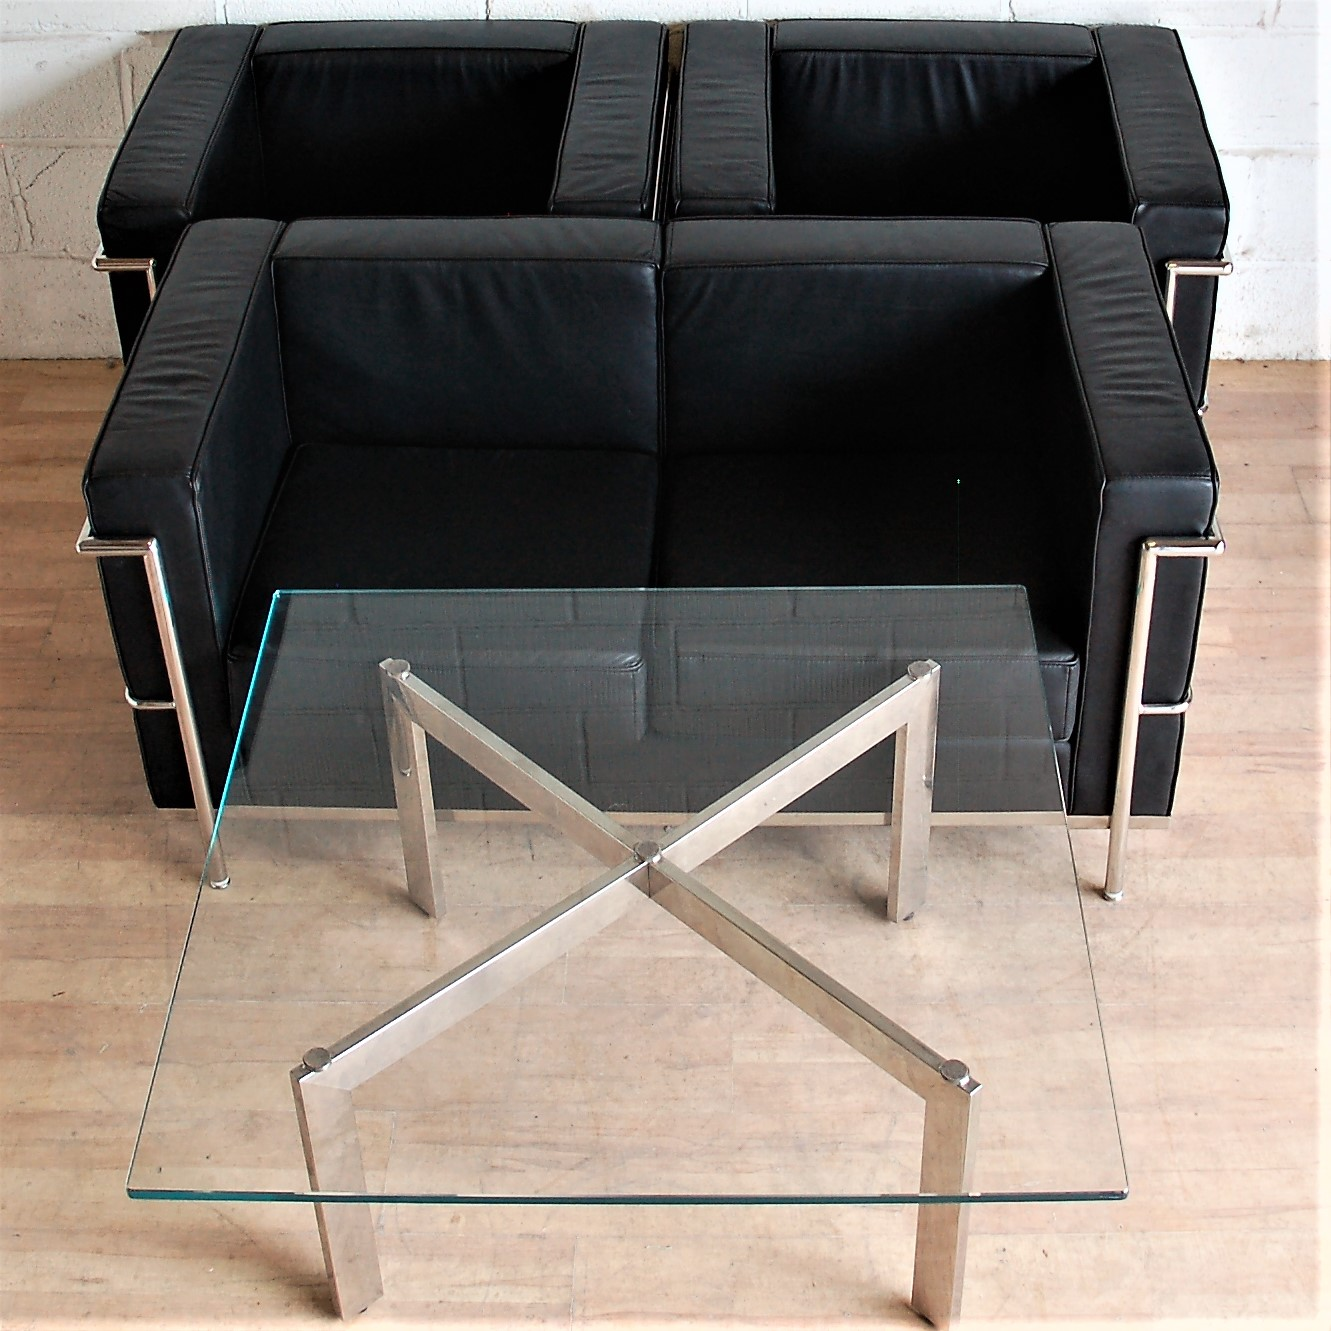 Le Corbusier LC2 style Sofa - 2 Armchairs - Coffee Table - Black Leather  3026